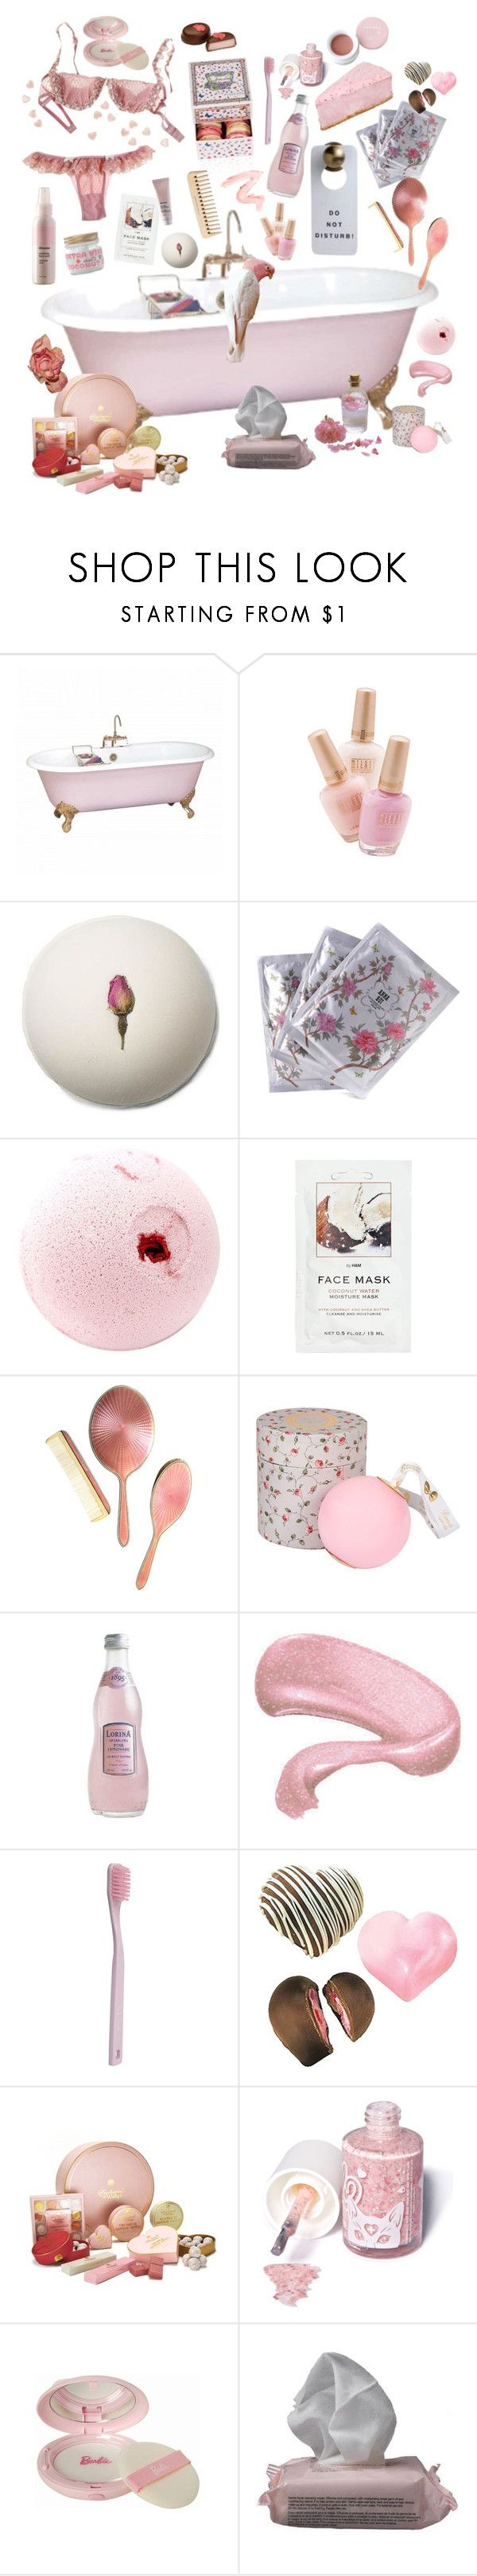 """""""Rose Water"""" by jacesea ❤ liked on Polyvore featuring Anna Sui, H&M, Tiffany & Co., Ladurée, By Terry, The Body Shop, Paul Smith, Wilton, Charbonnel et Walker and Sugarpill"""